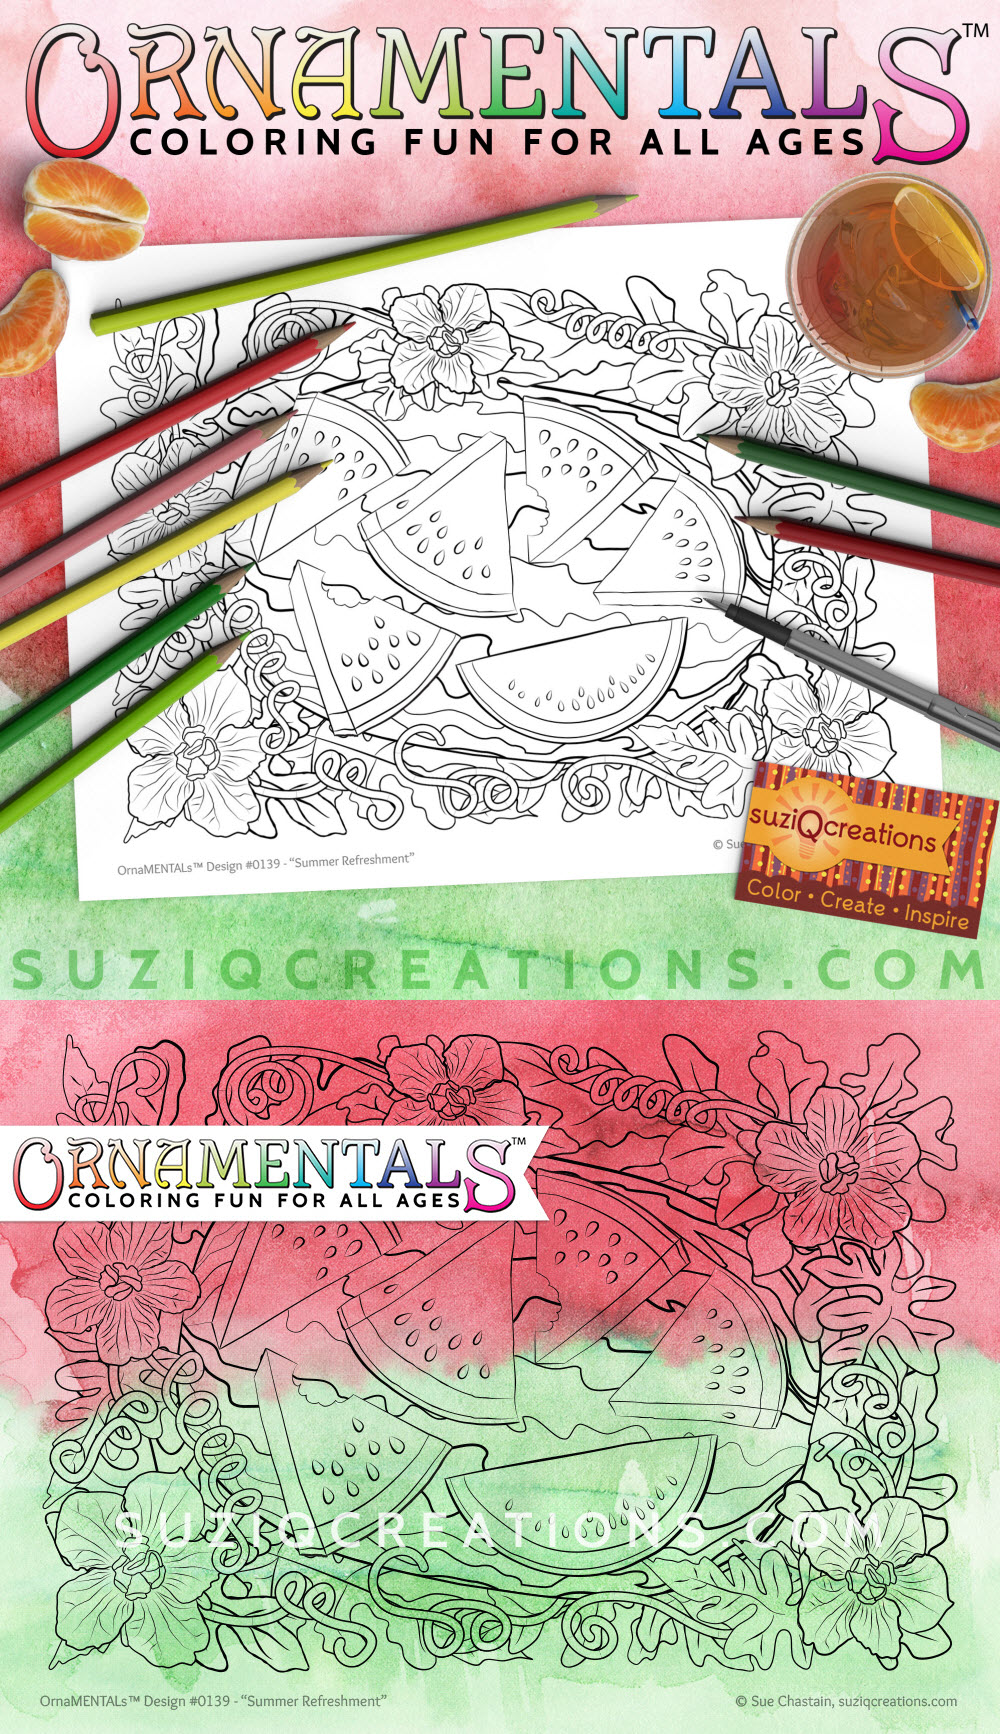 Summer Refreshment Coloring Page Preview - OrnaMENTALsDesign #0139